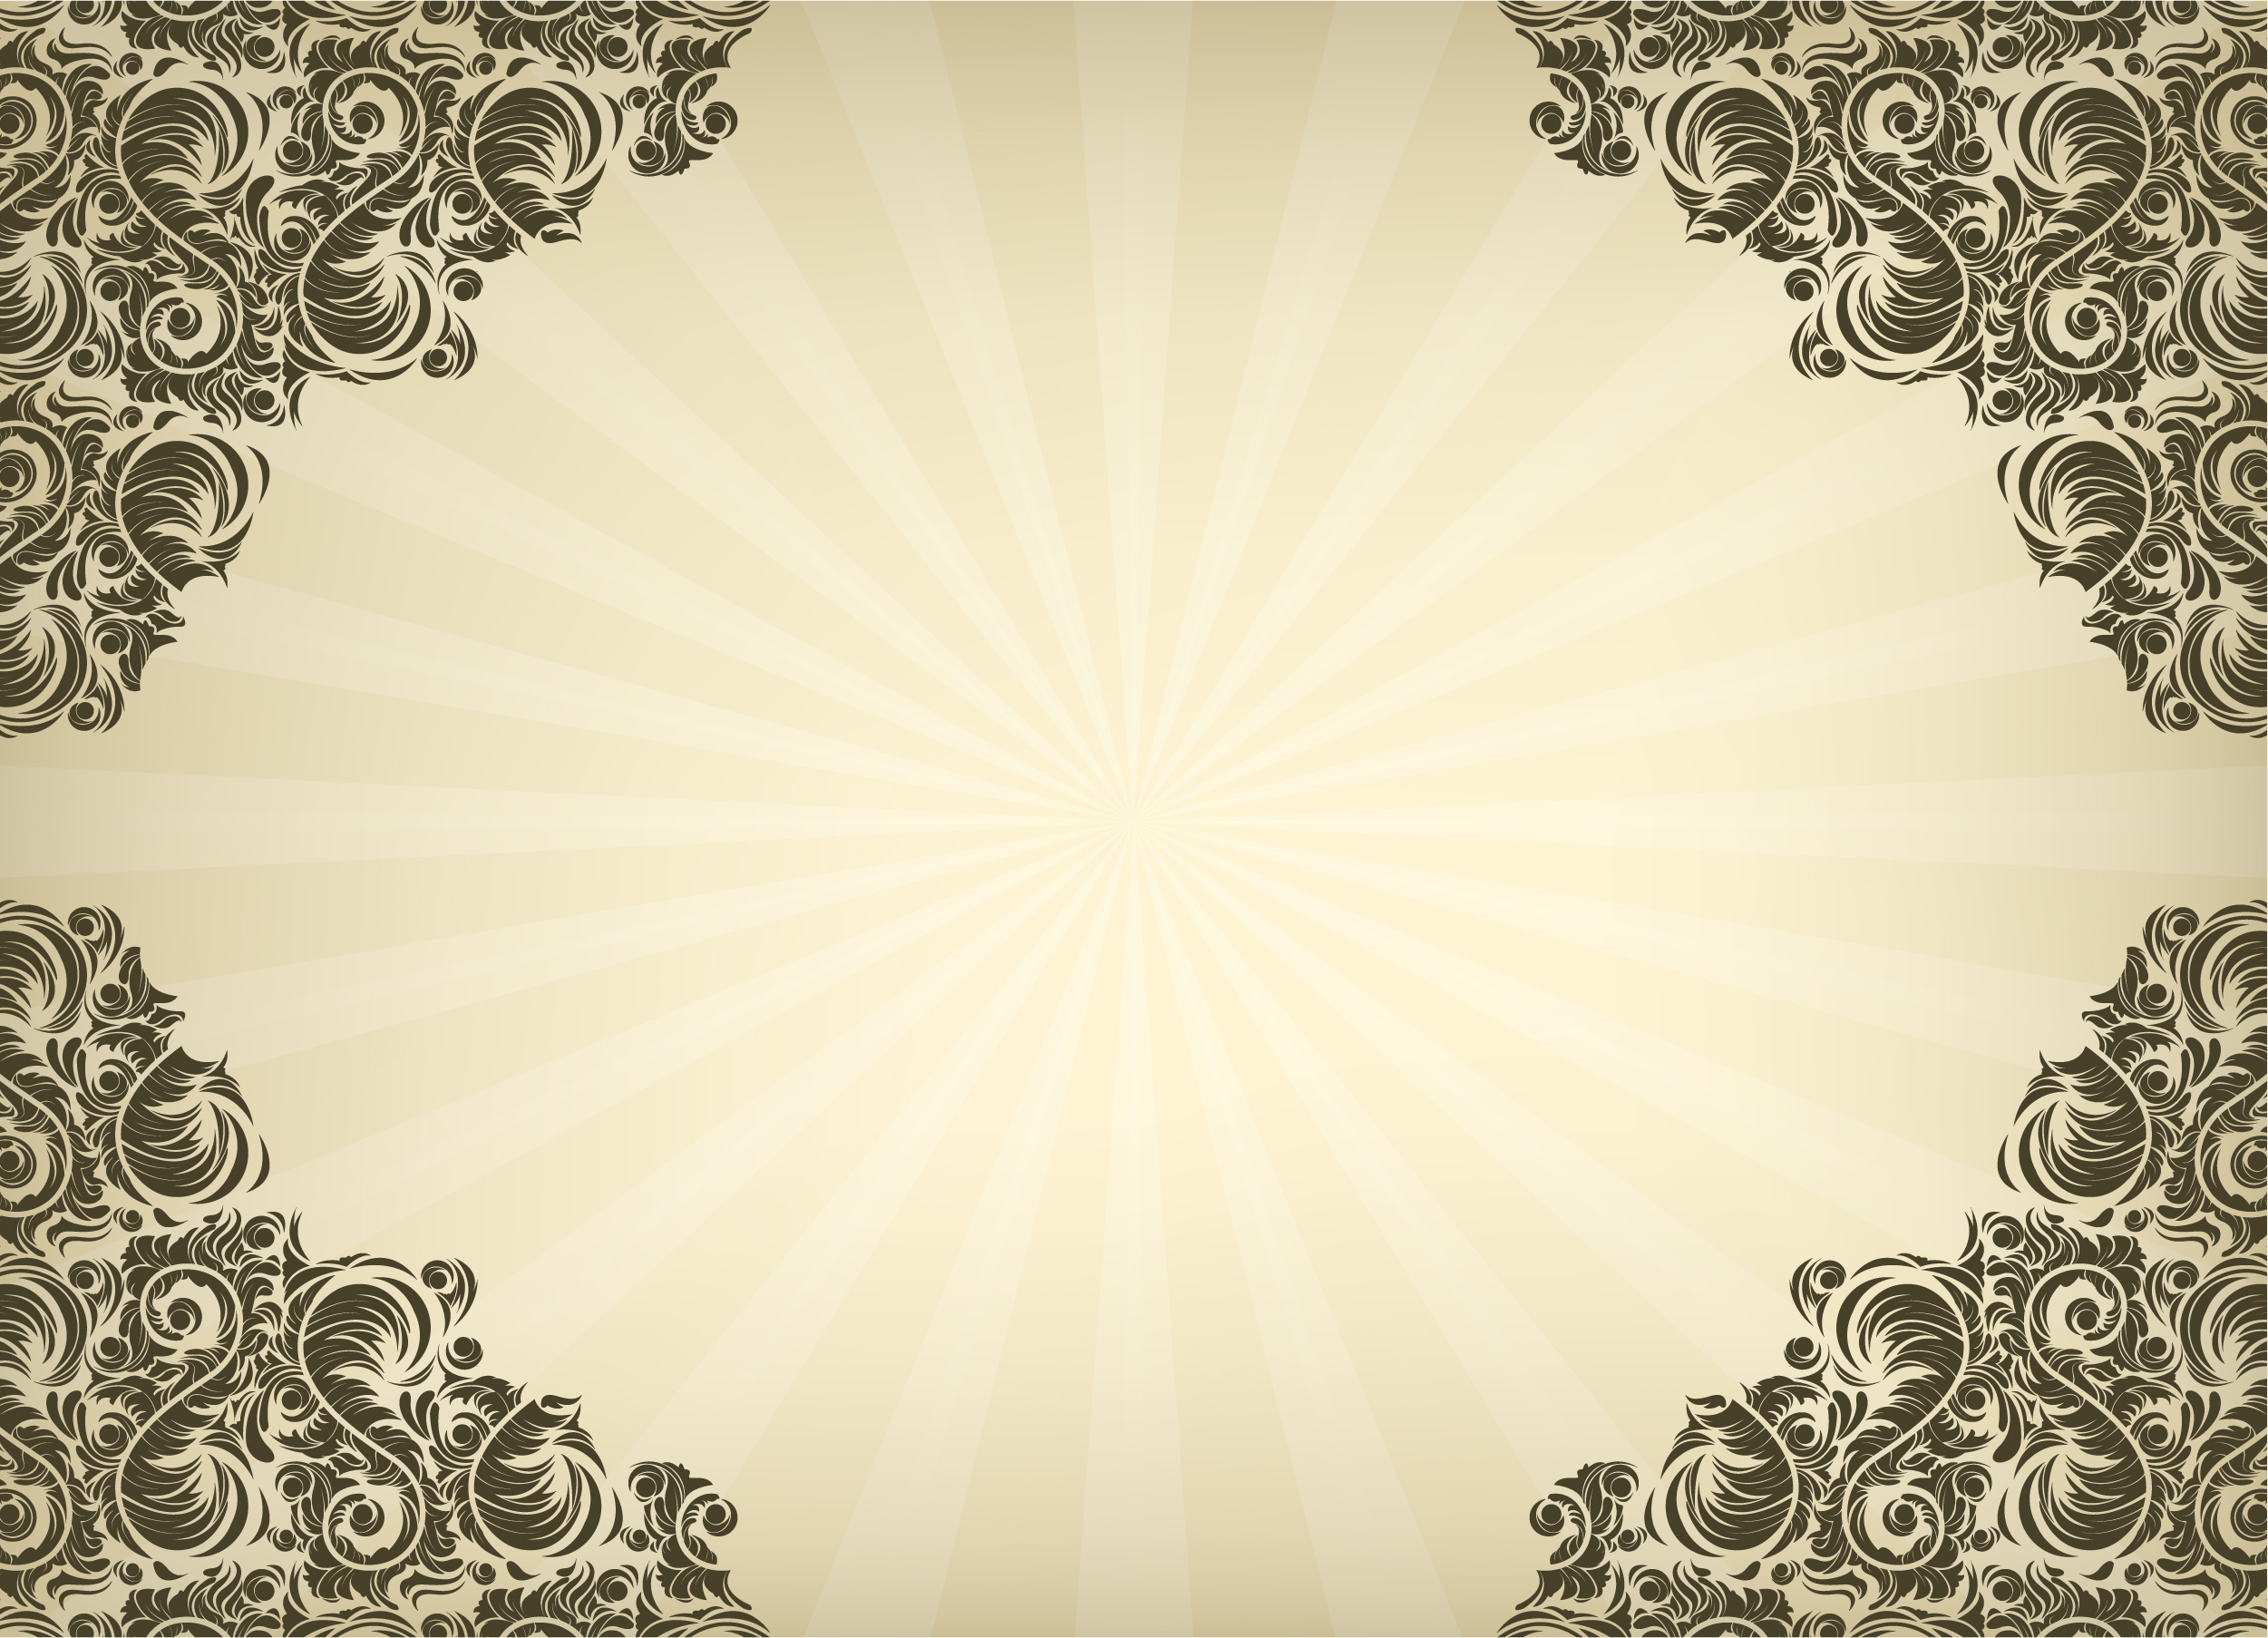 Vintage Floral Background Vector Illustration Designious